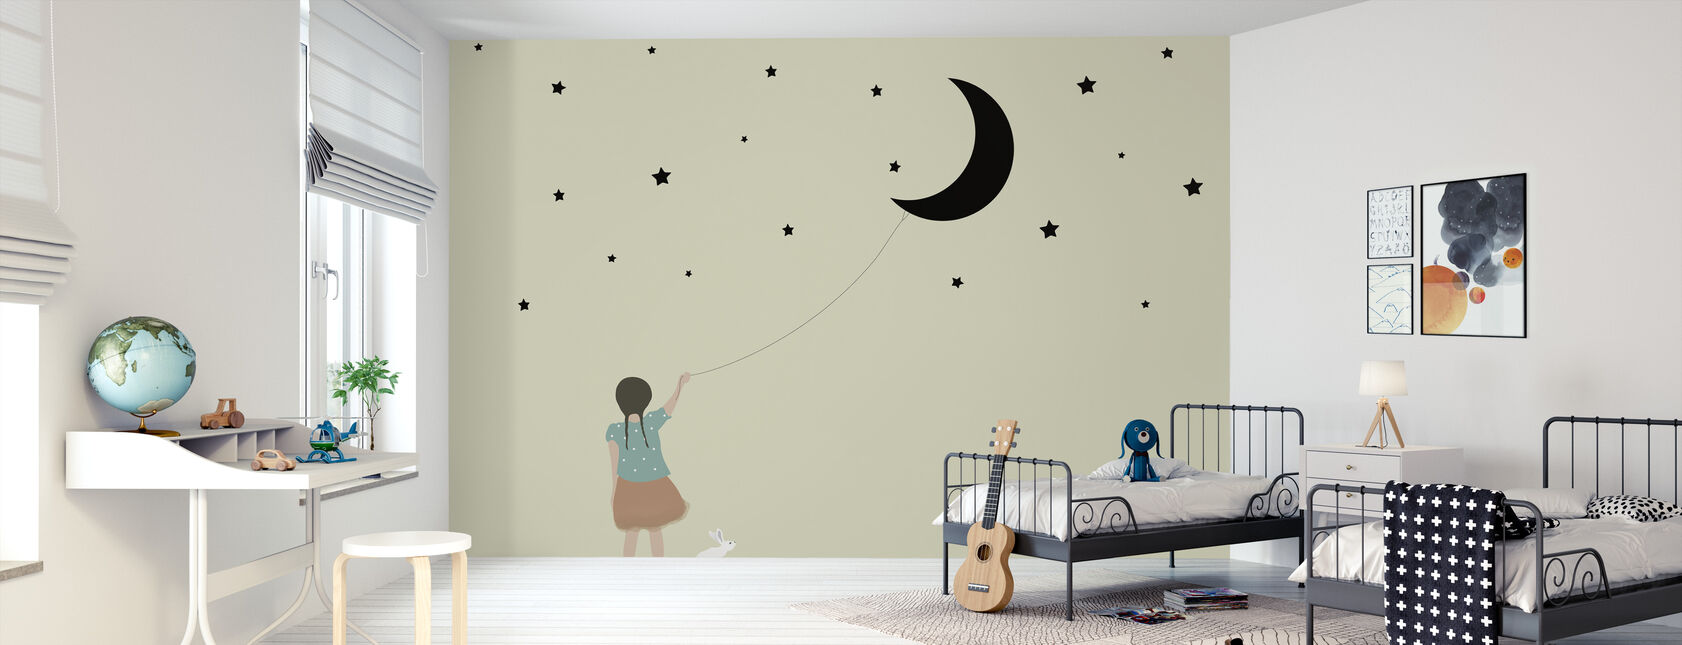 Stars and moon - Wallpaper - Kids Room